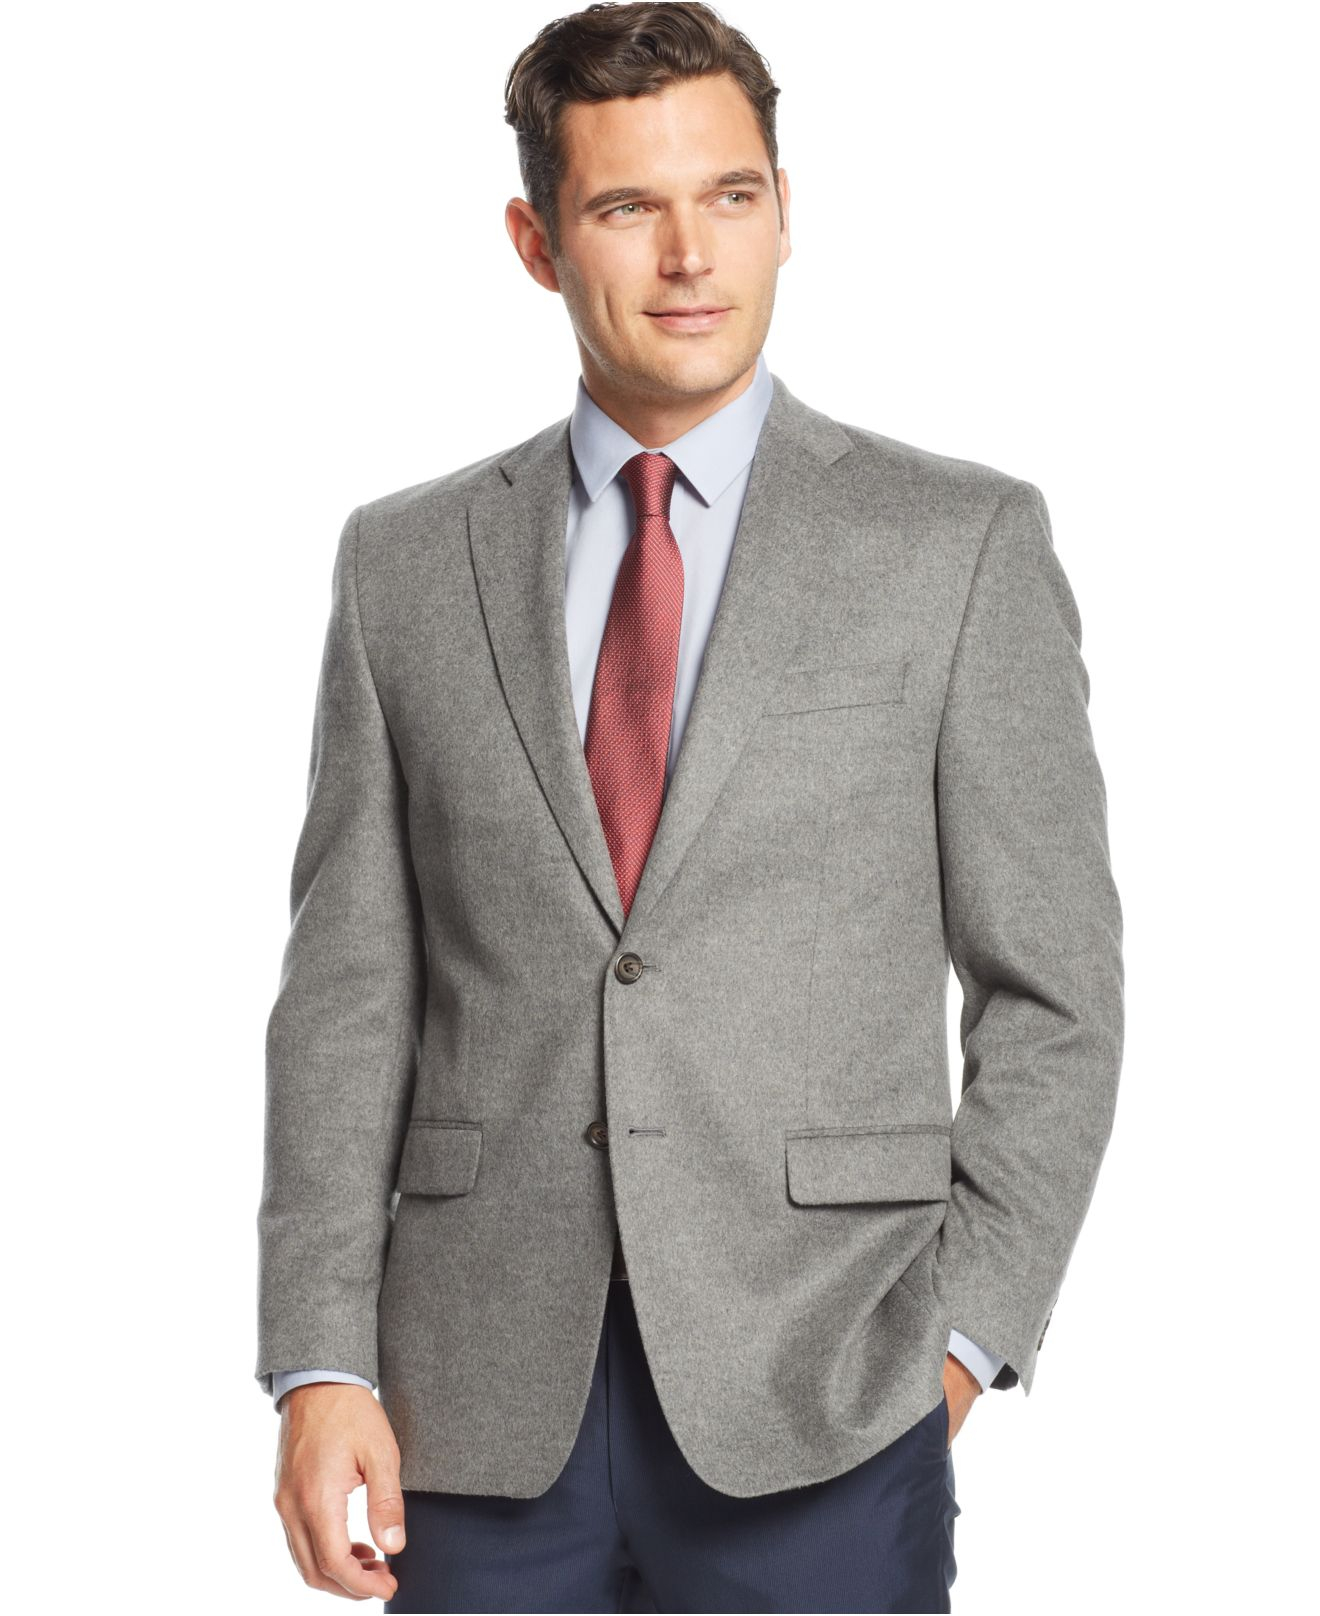 Online shopping for Clothing, Shoes & Jewelry from a great selection of Sport Coats & Blazers, Vests, Suits, Suit Separates, Tuxedos & more at everyday low prices.